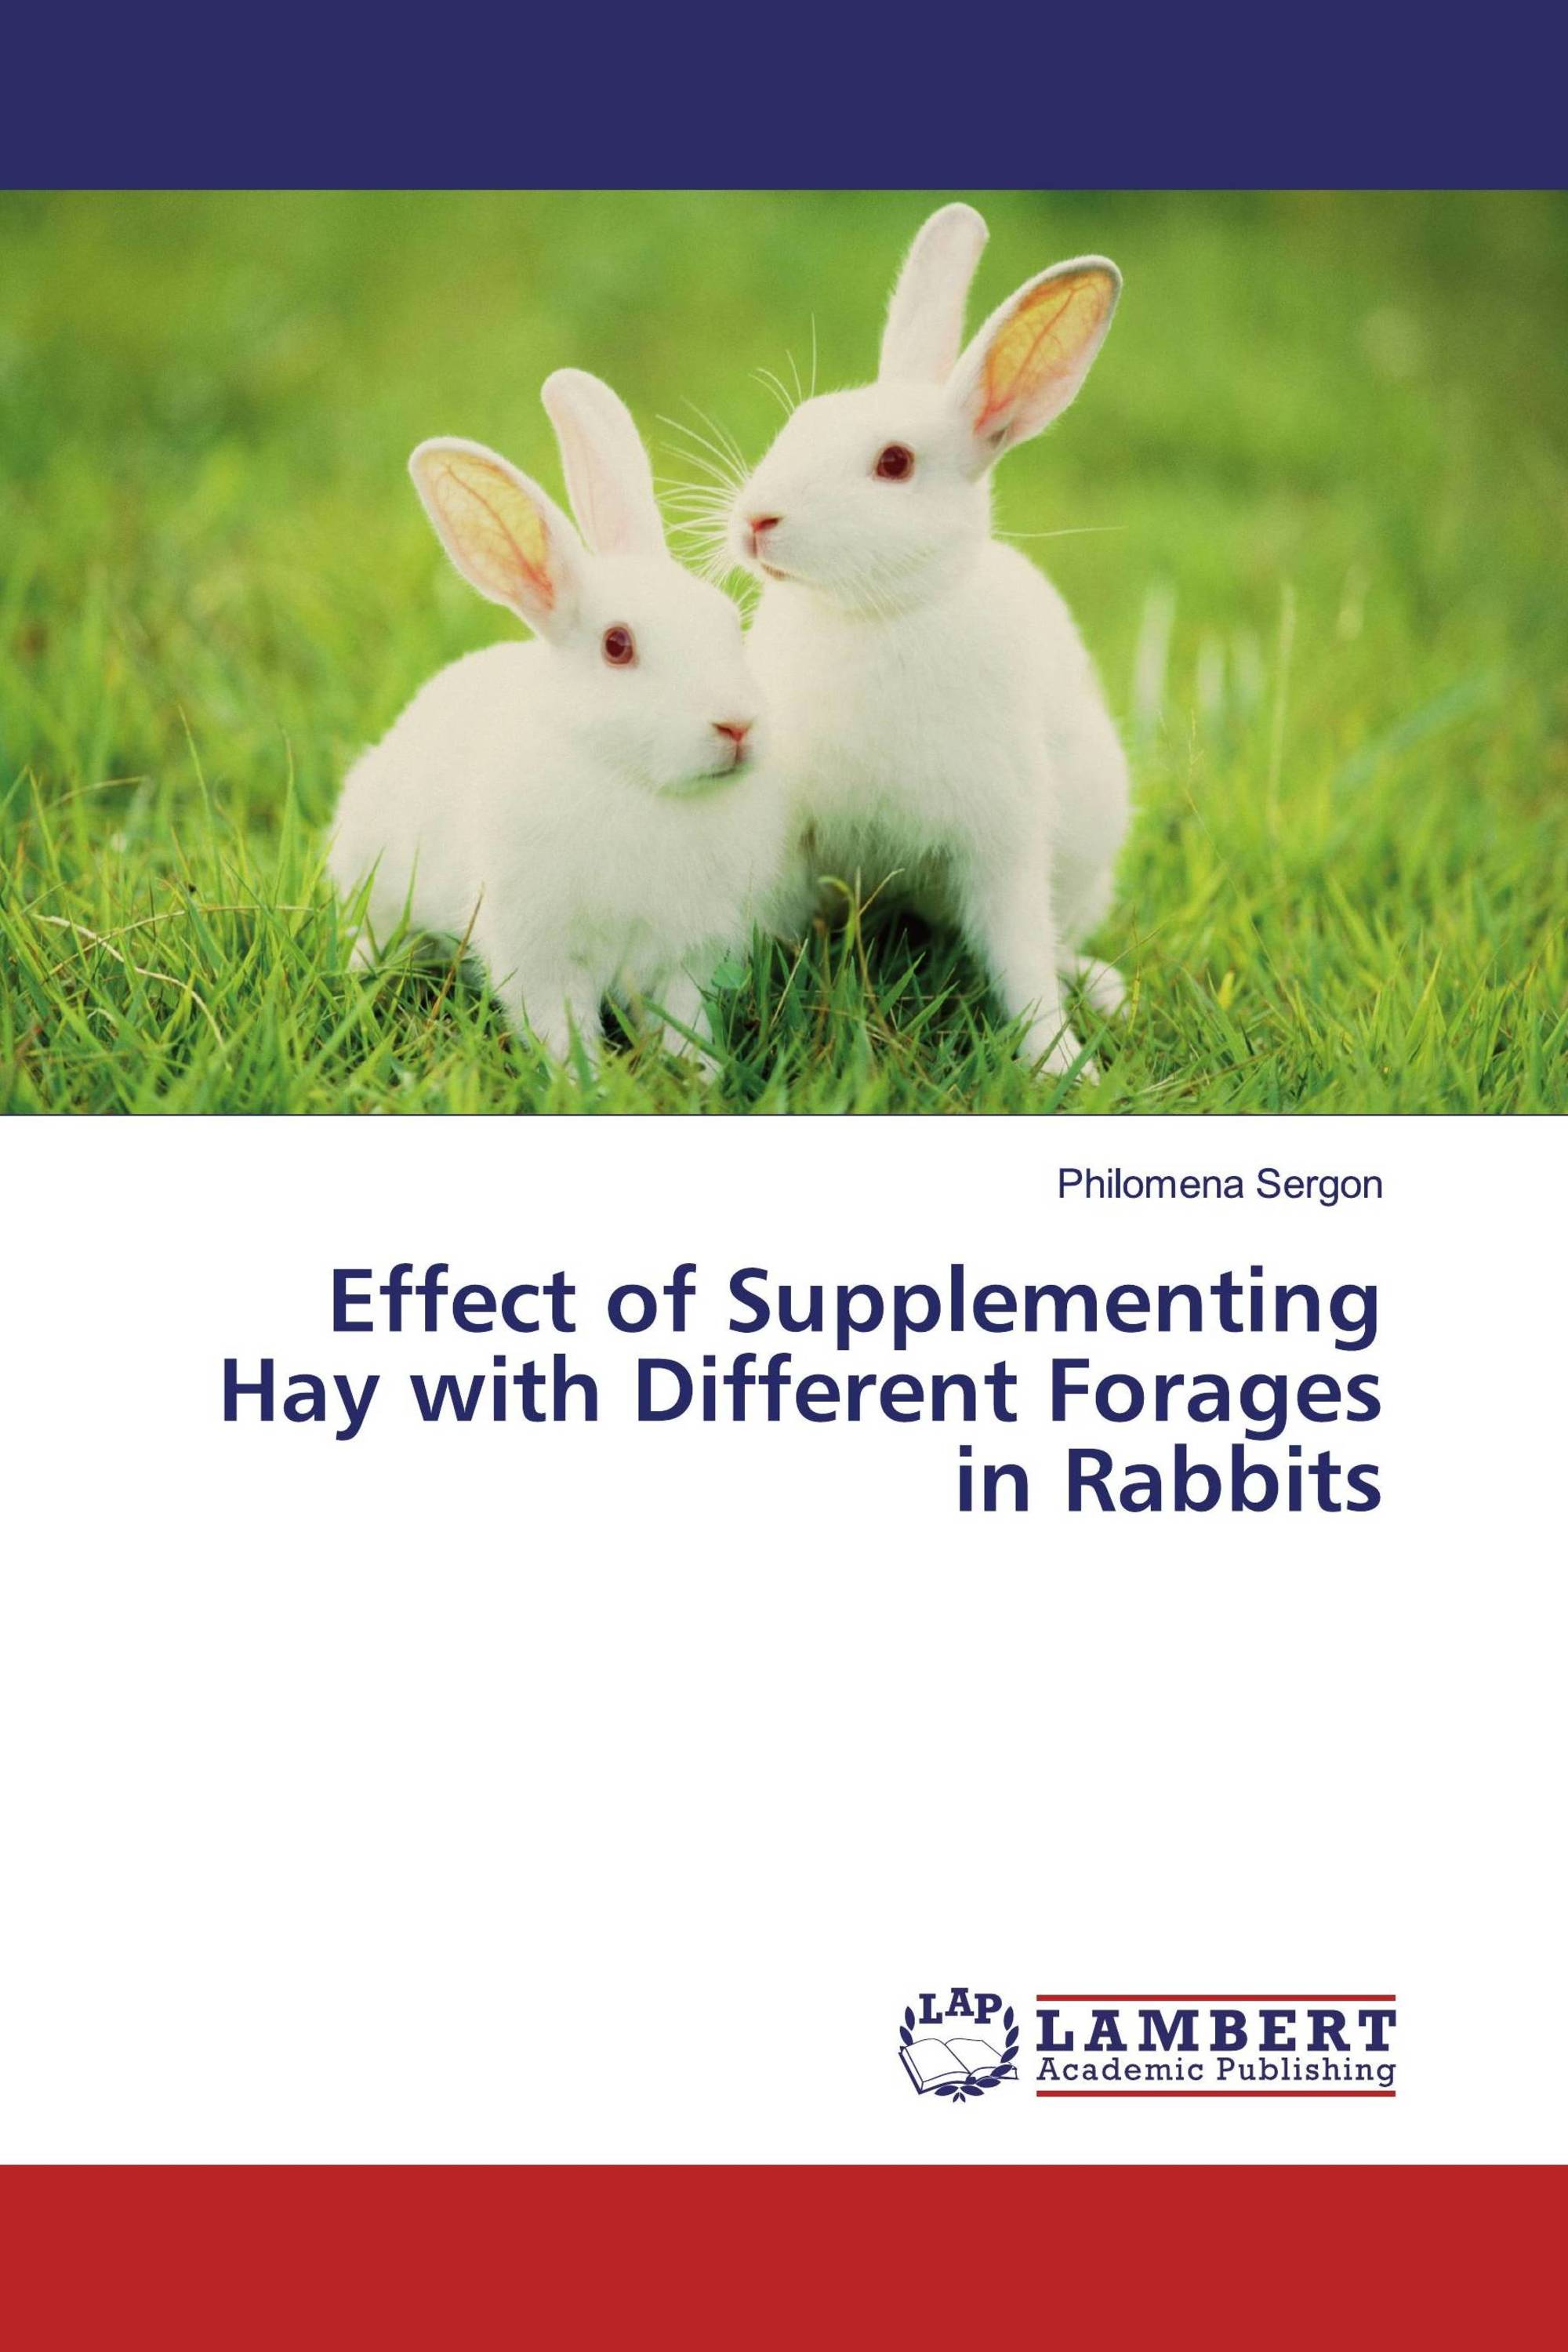 Effect of Supplementing Hay with Different Forages in Rabbits